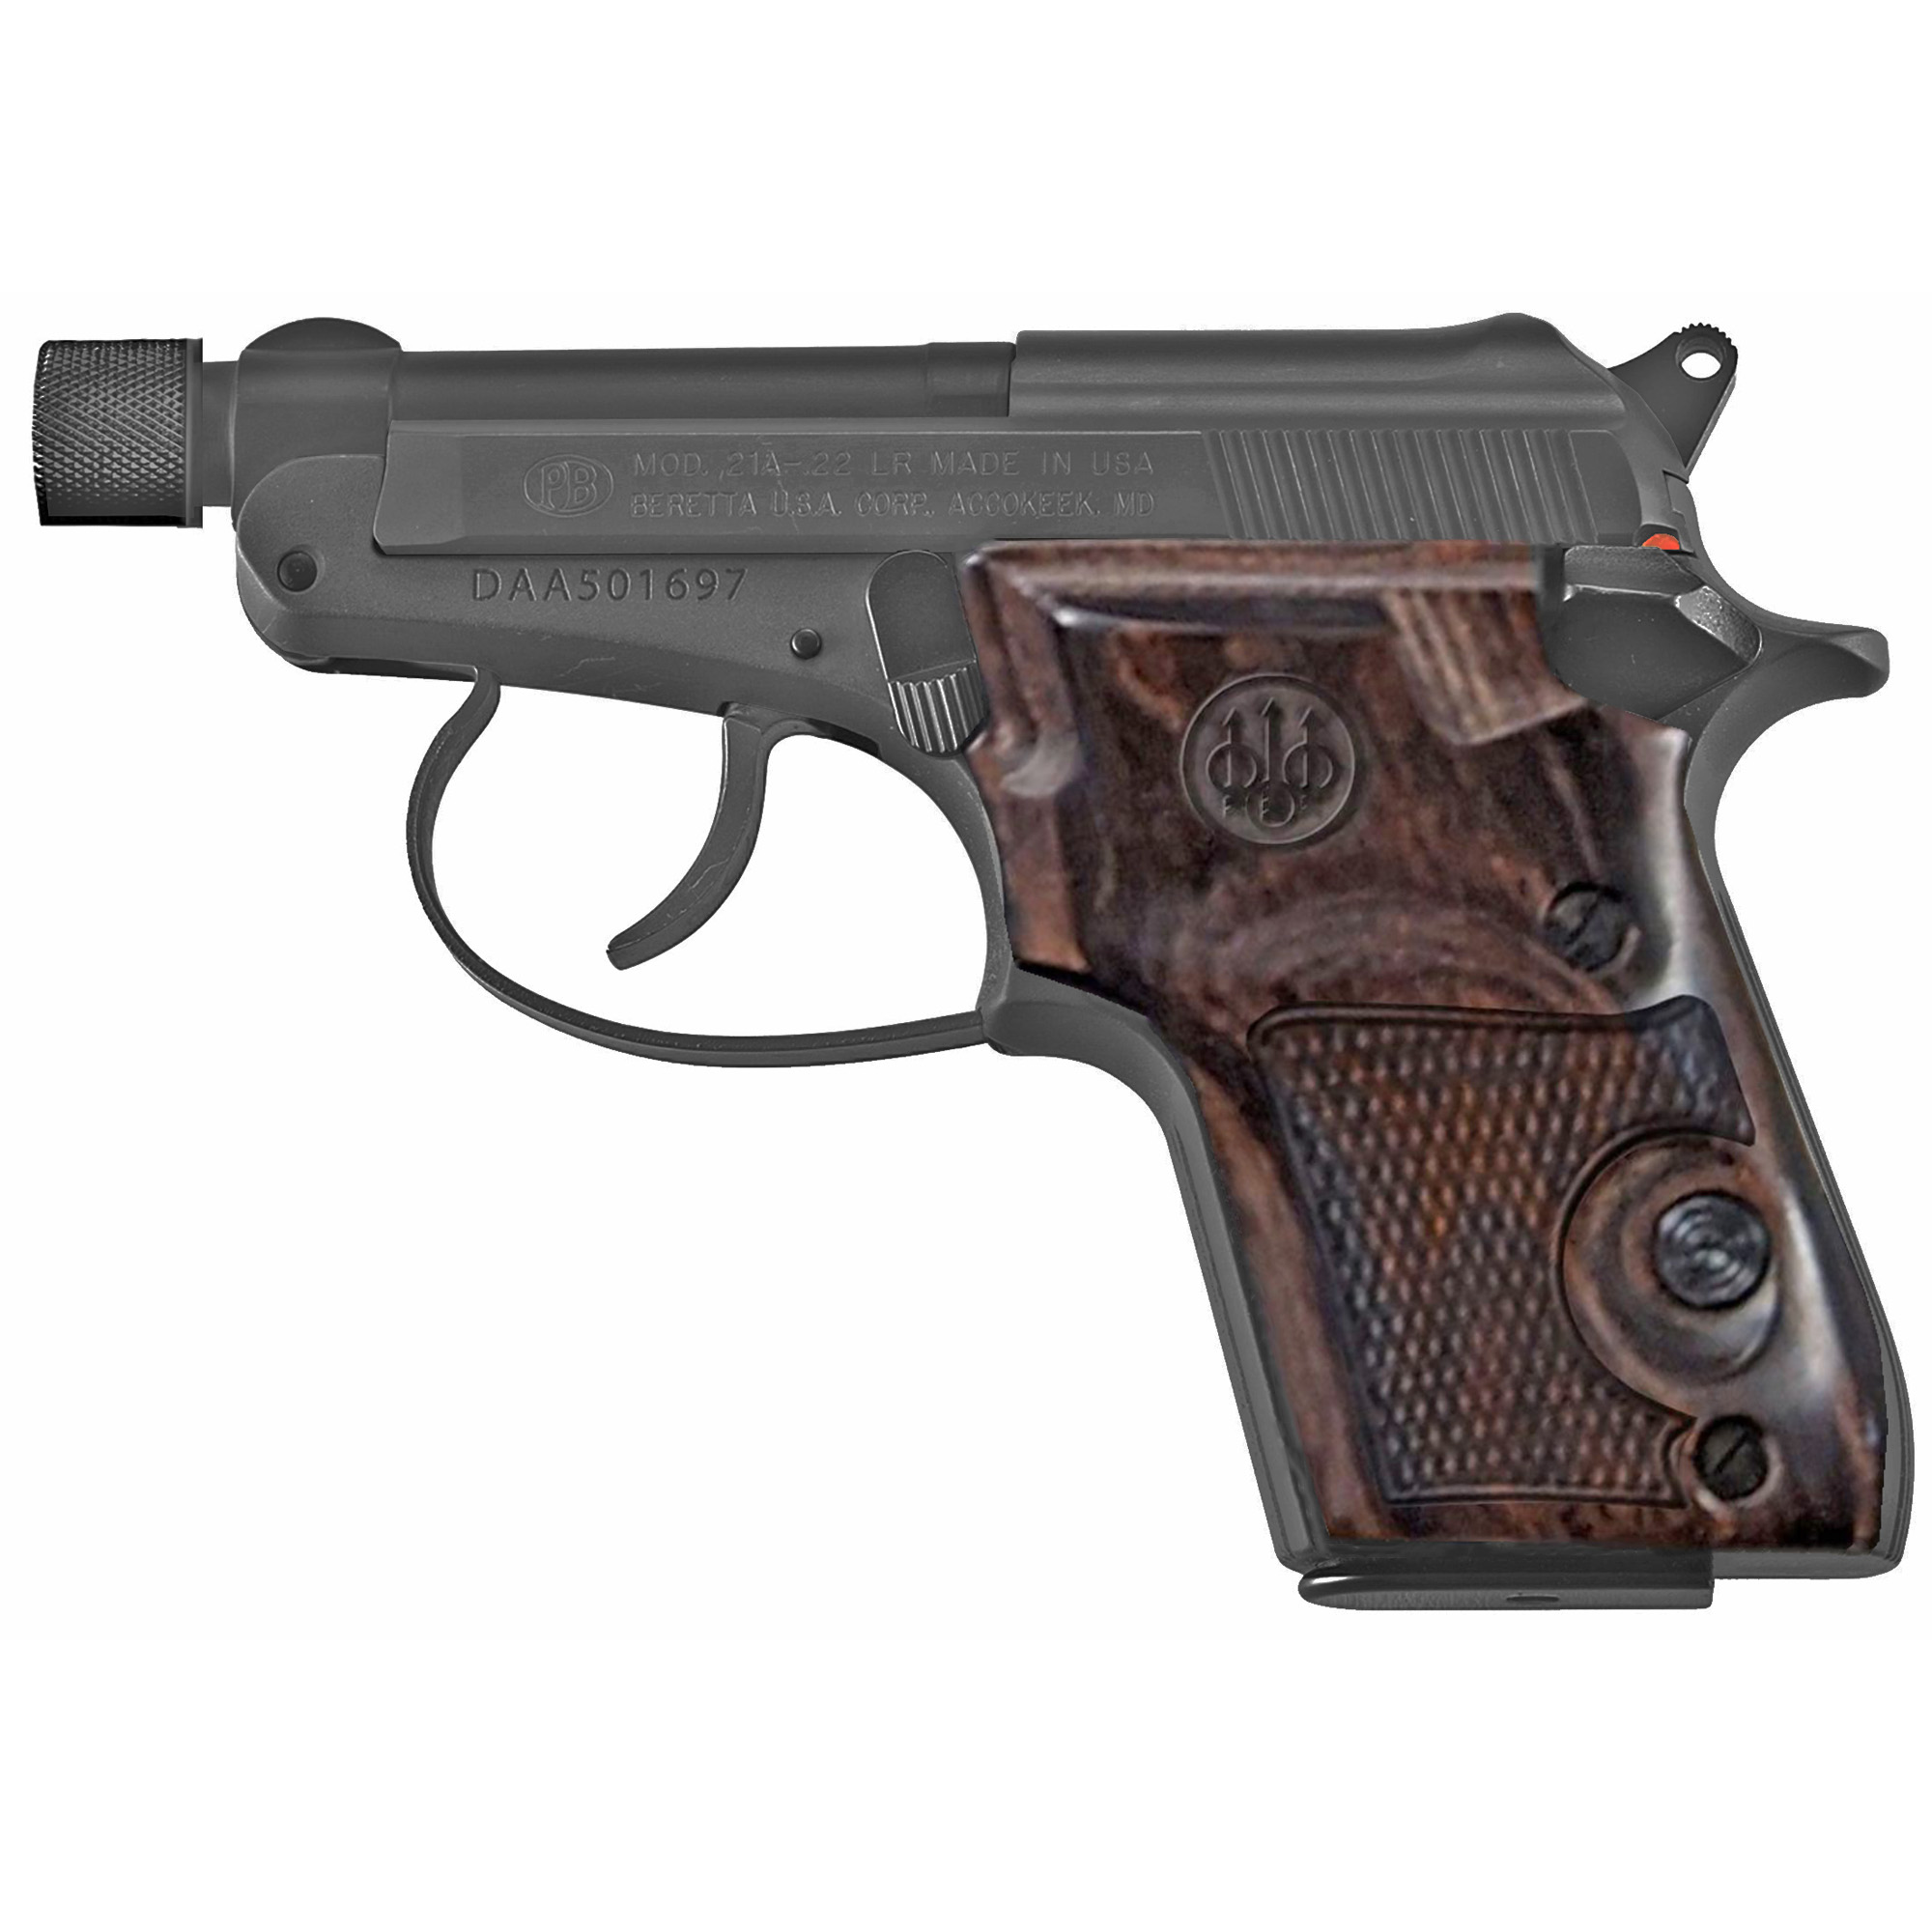 "Beretta 21a 22lr 2.9"" Th 7rd Blk"